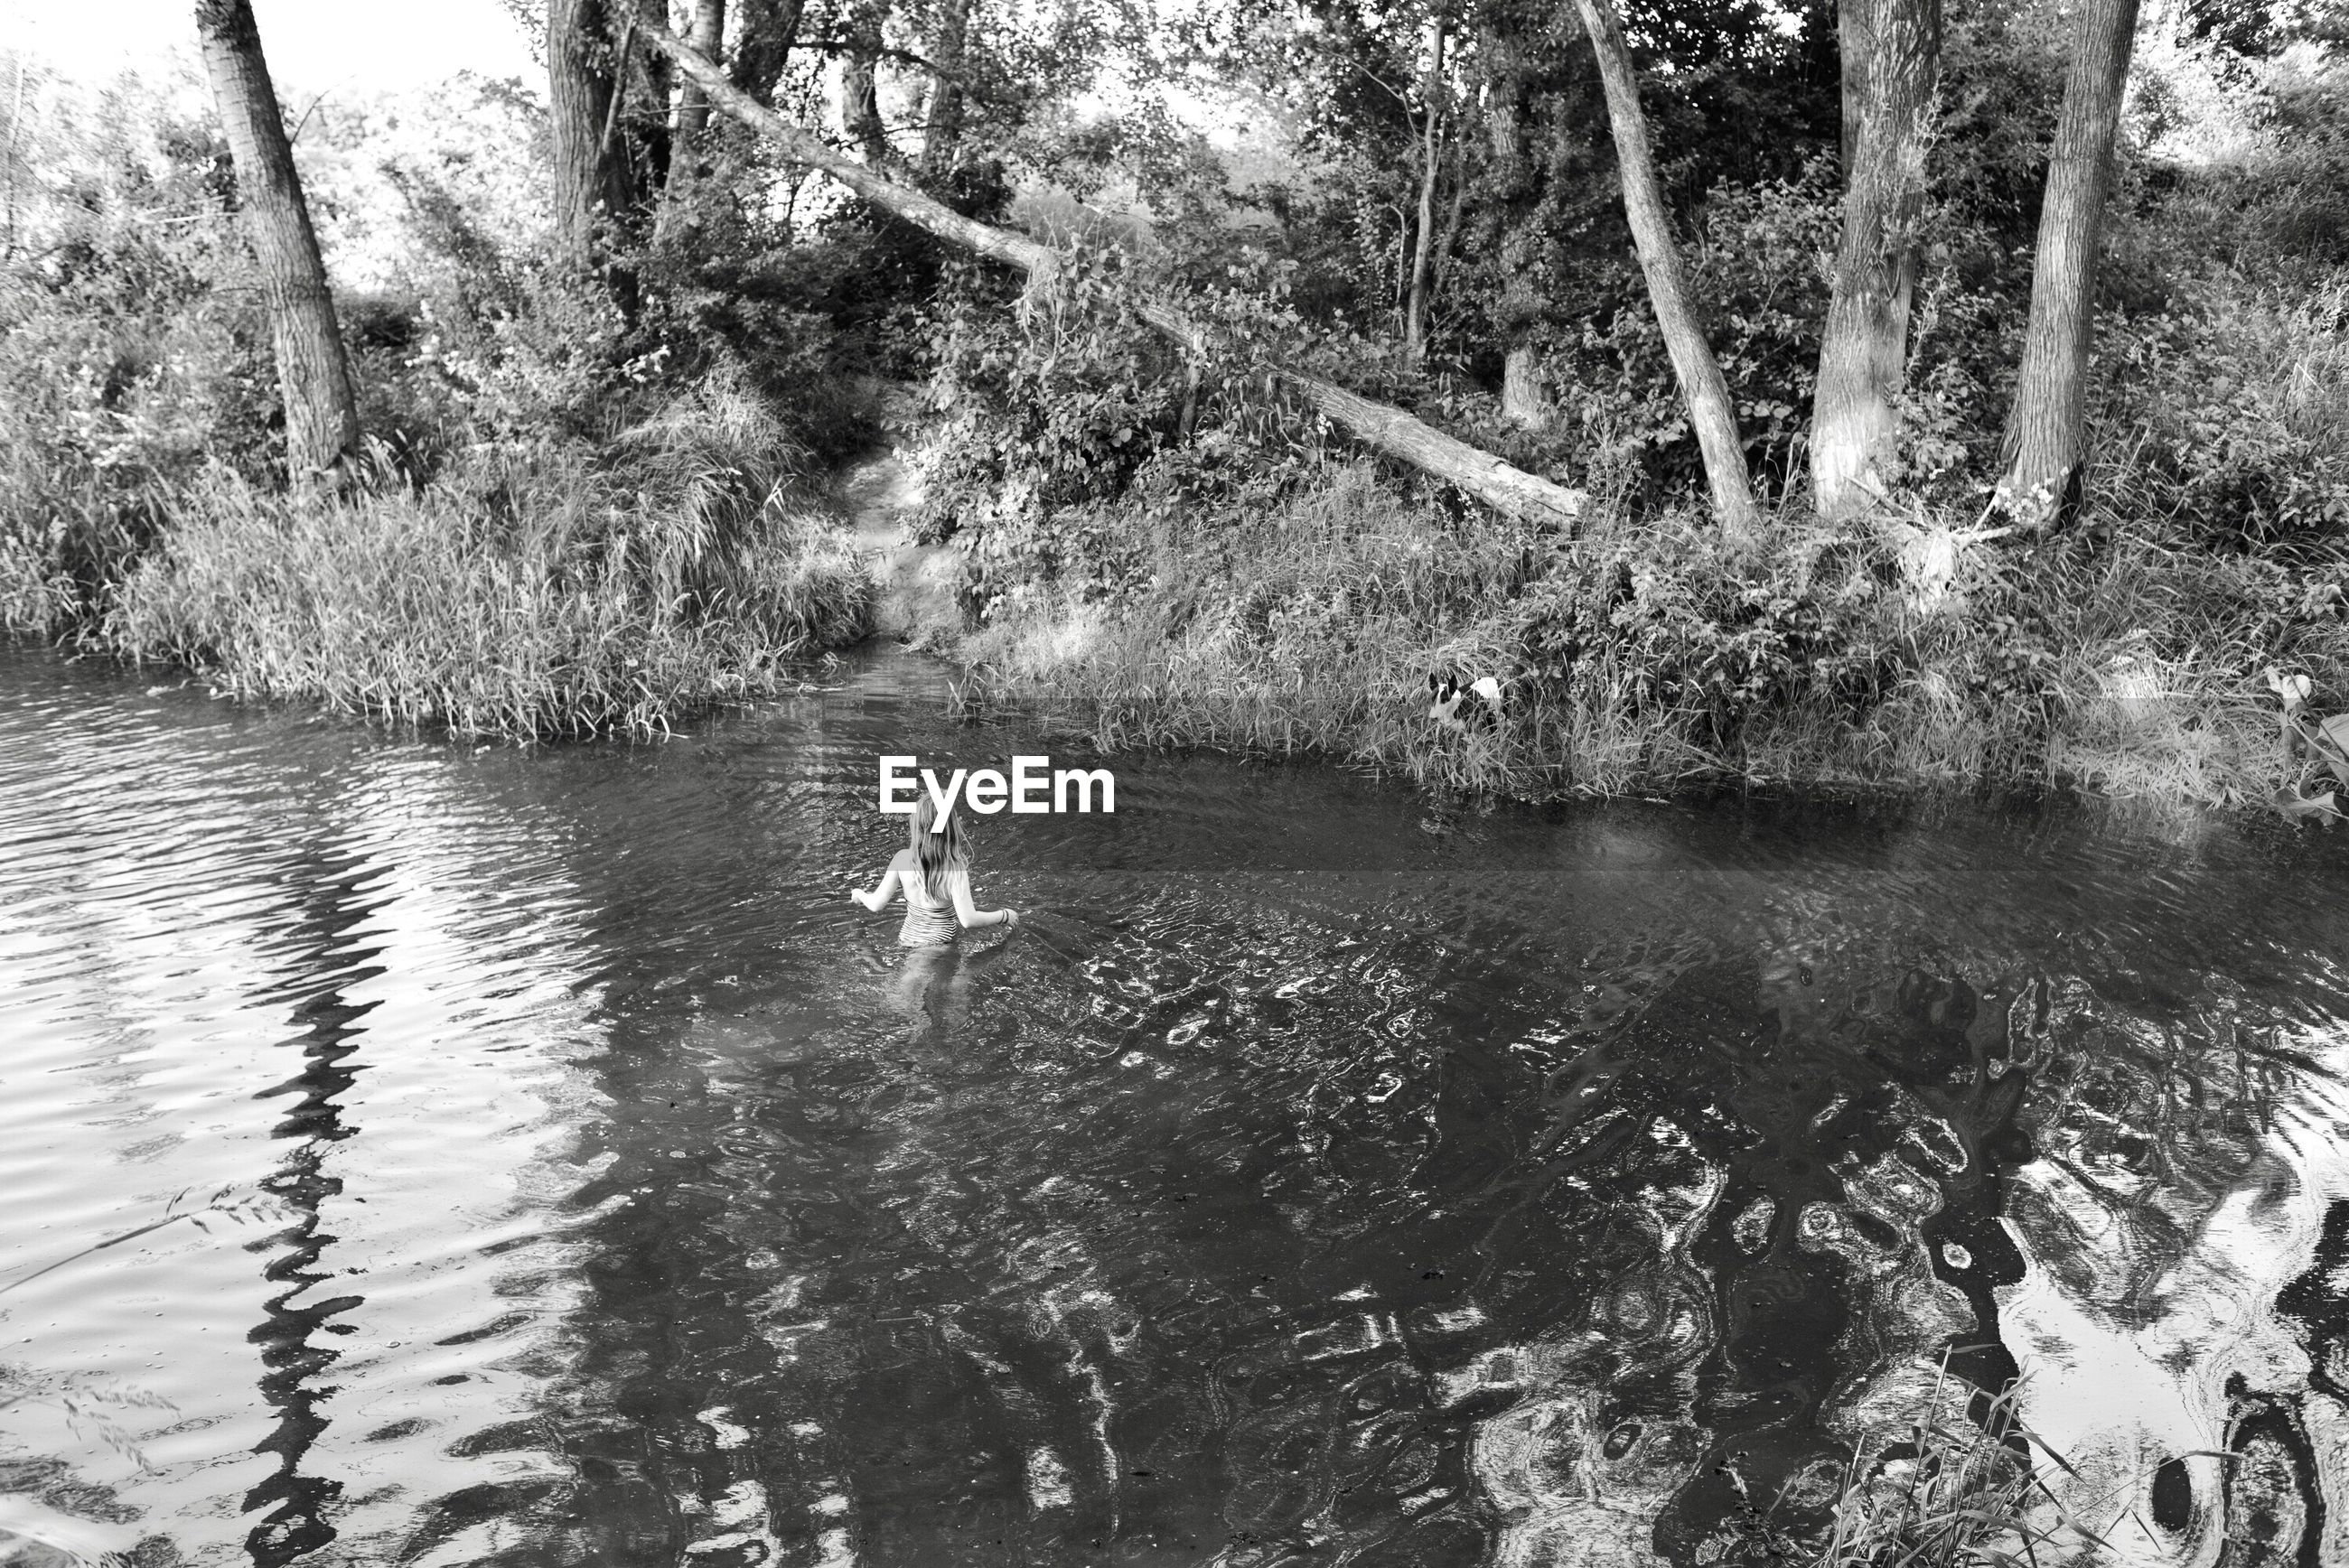 High angle view of woman swimming in lake at forest